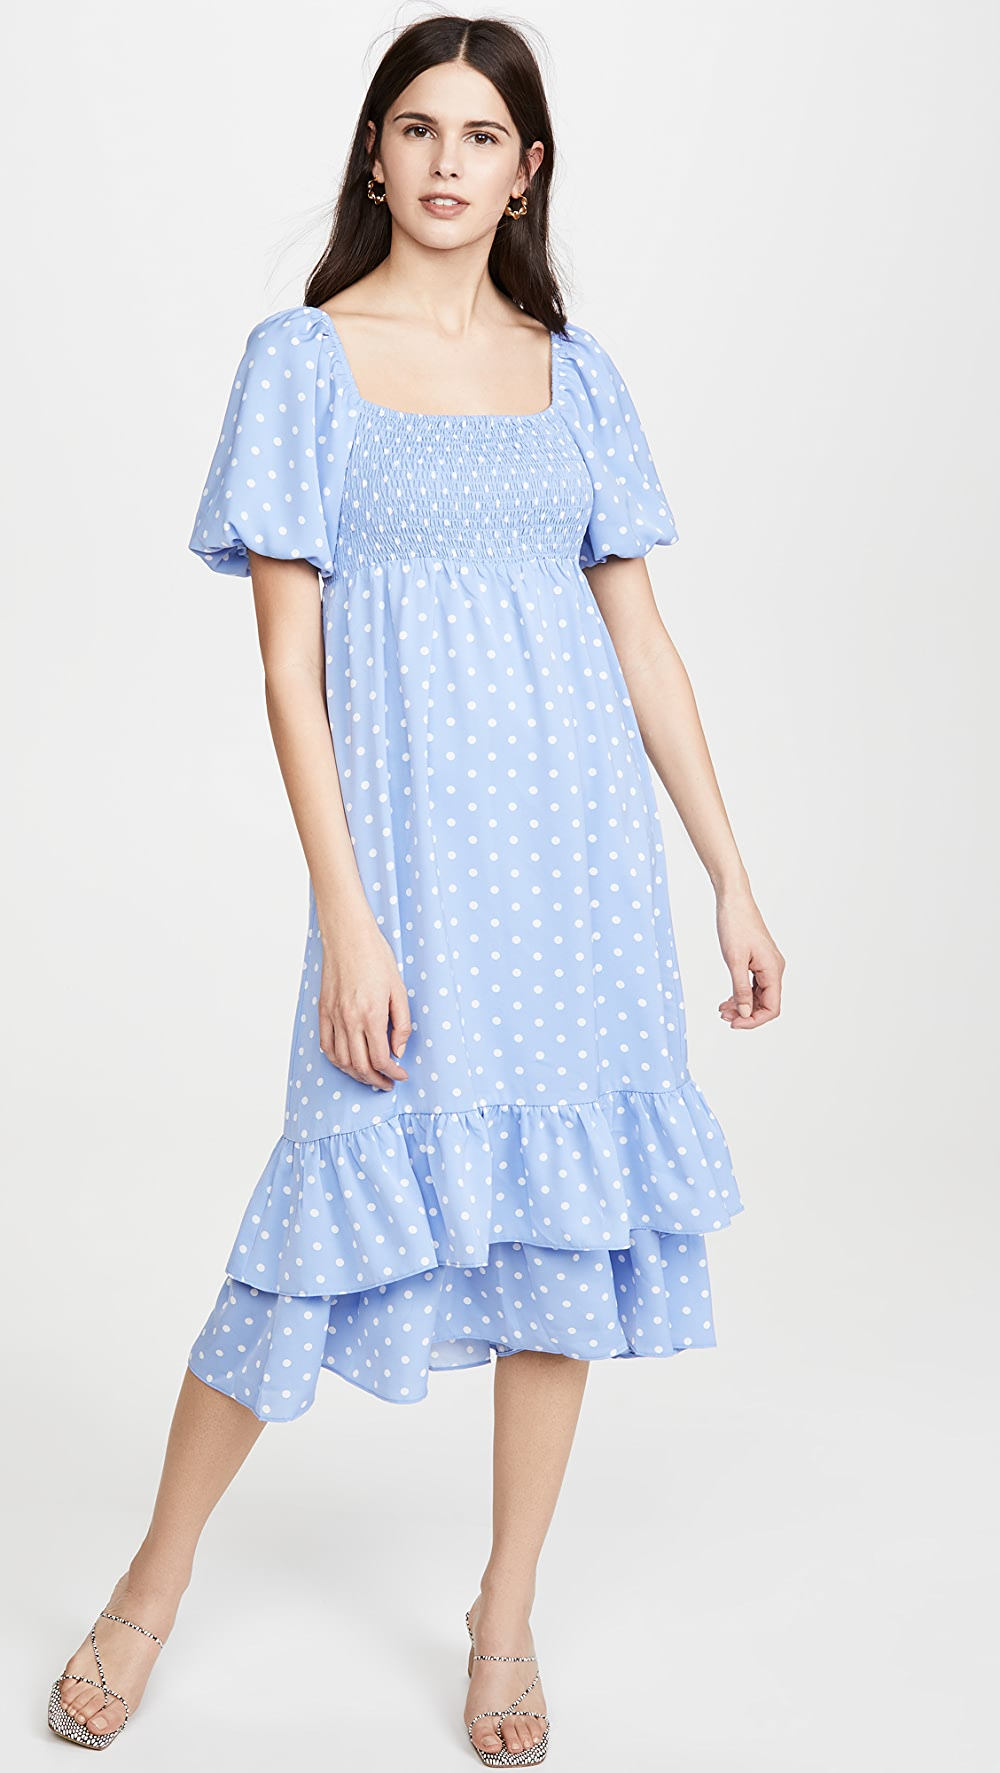 100% Quality English Factory - Dot Pattern Long Dress Spare No Cost At Any Cost